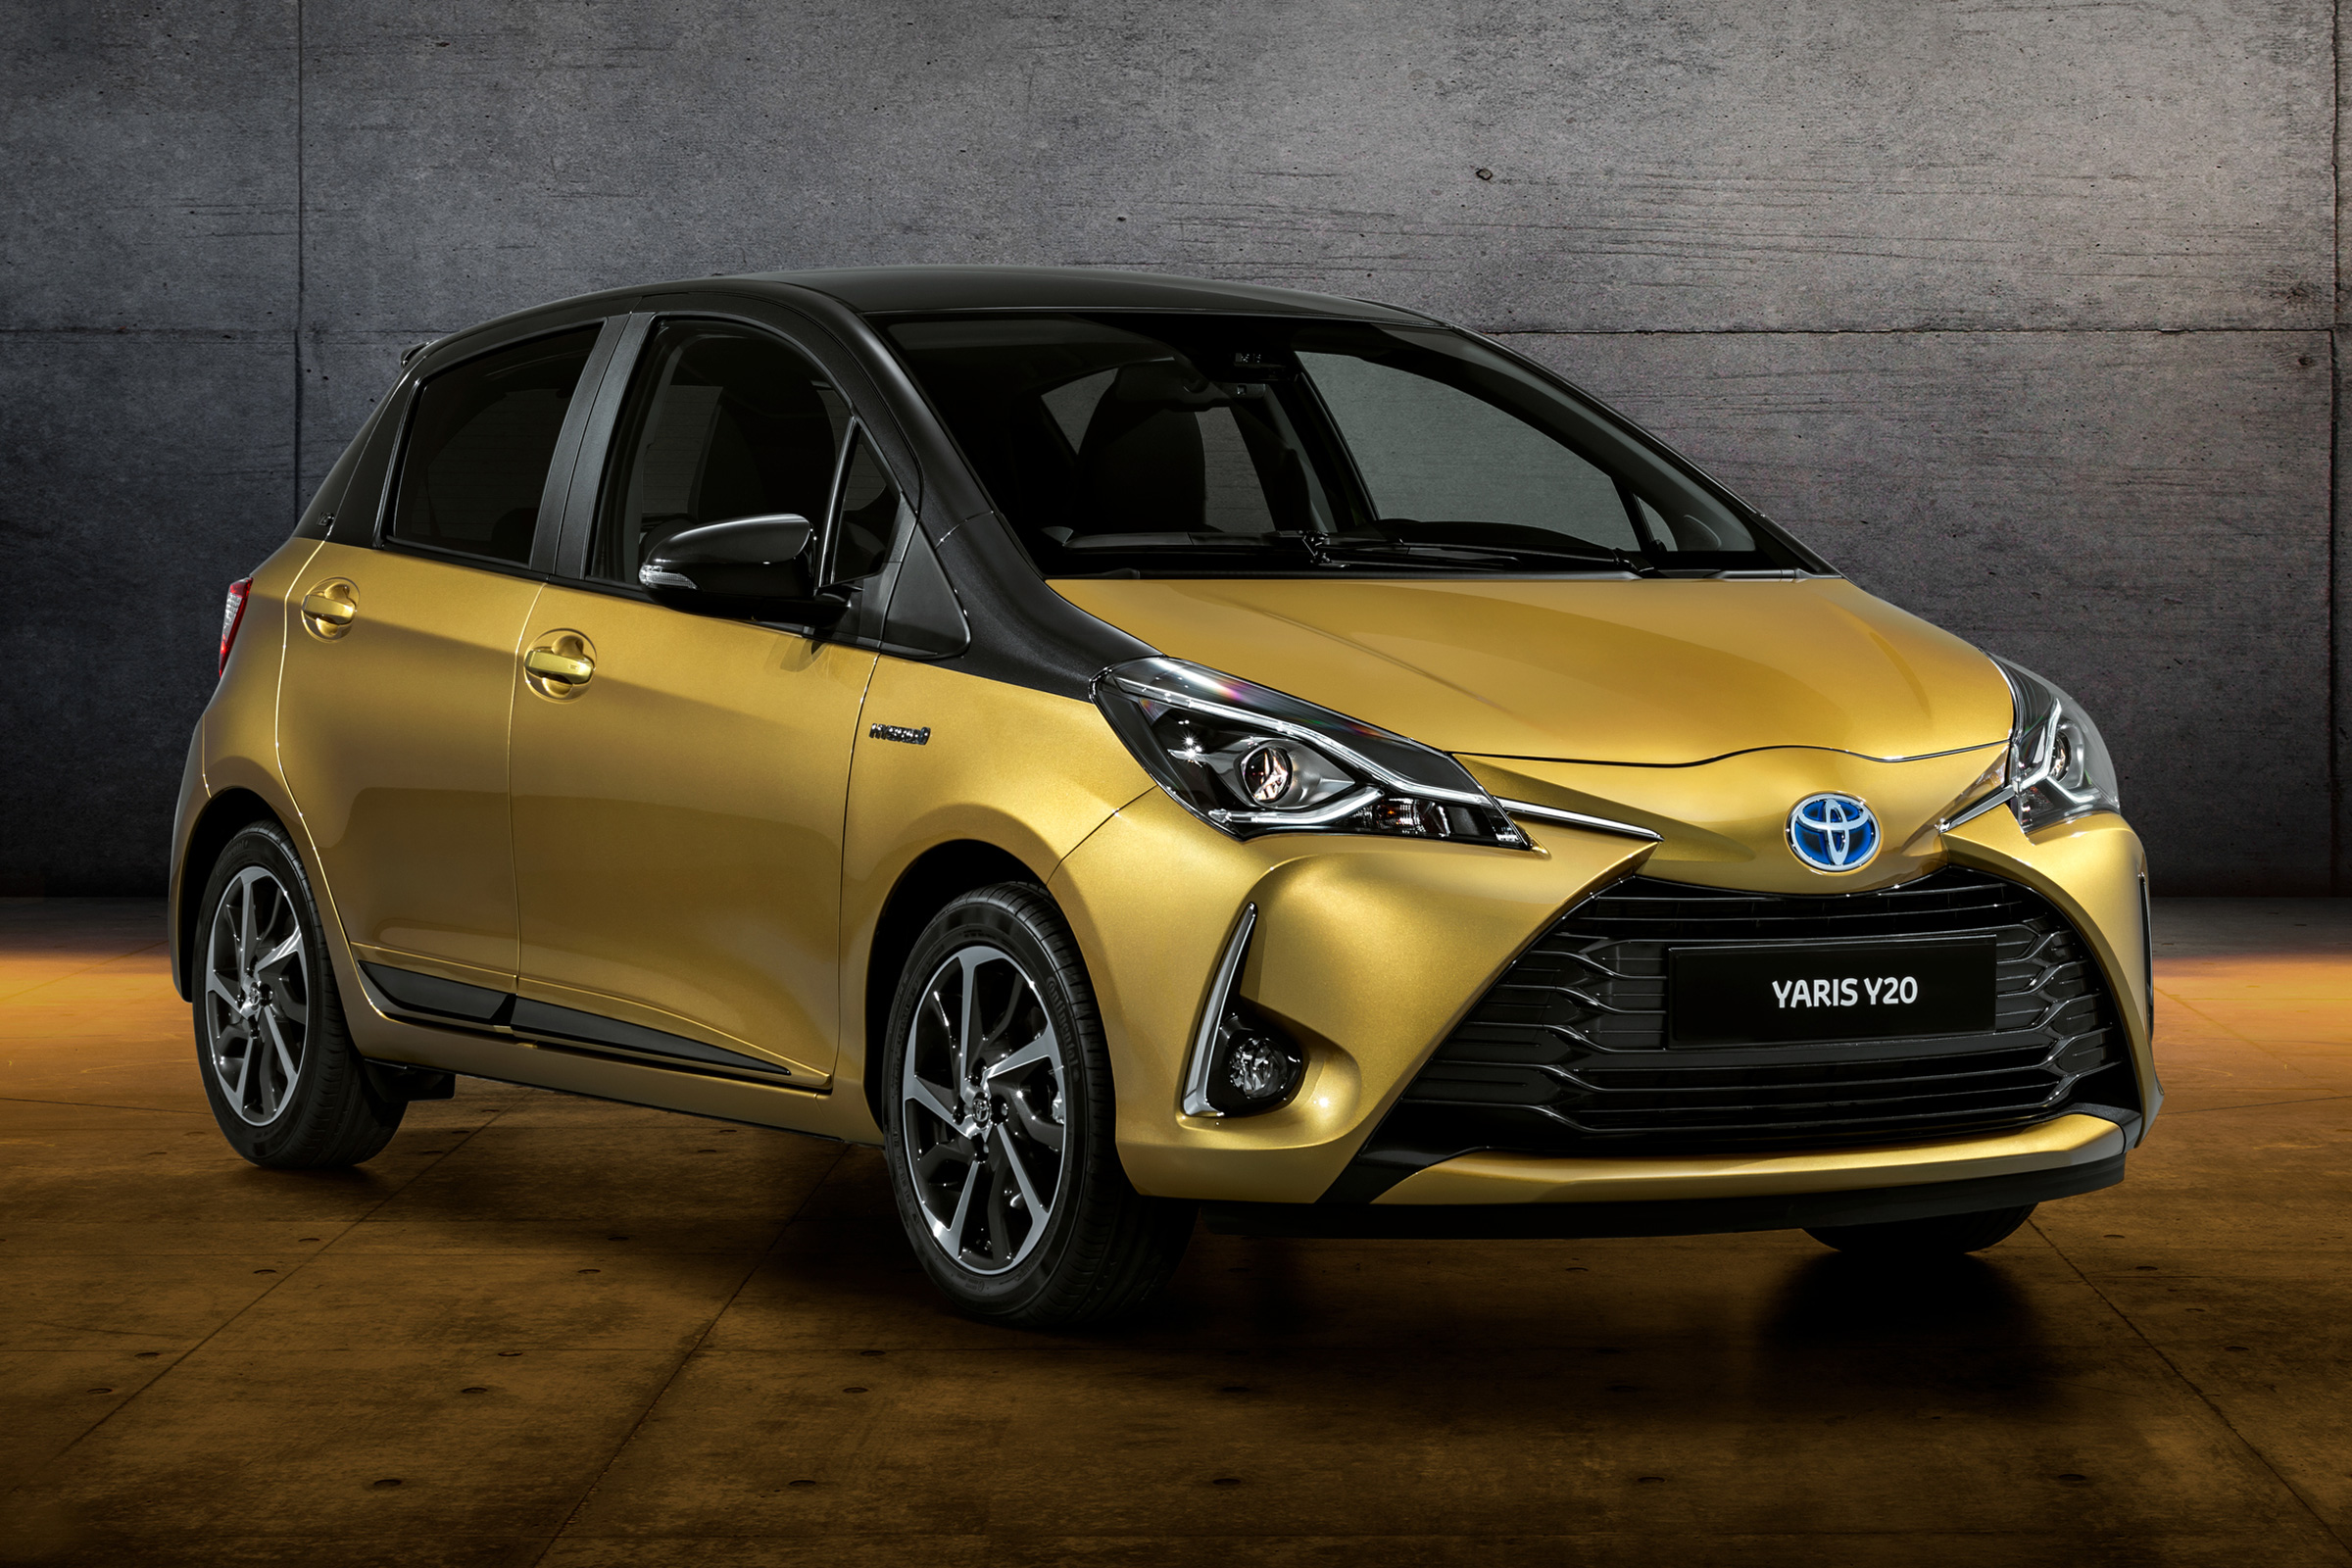 Upgrade to a Yaris Y20 Hybrid for Less with Finance*